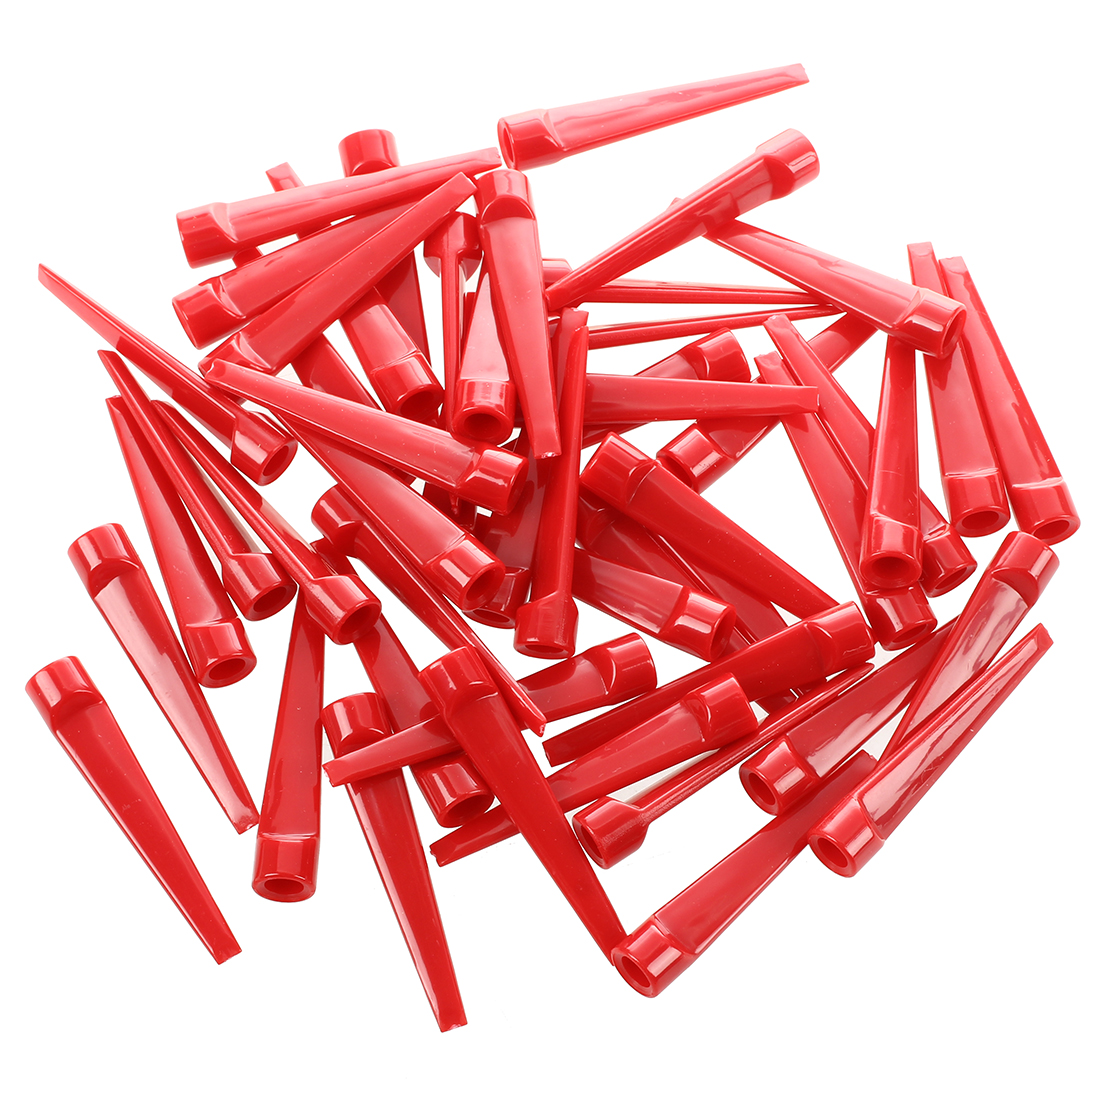 50pcs Plastic Golf Tee Tees (Red)